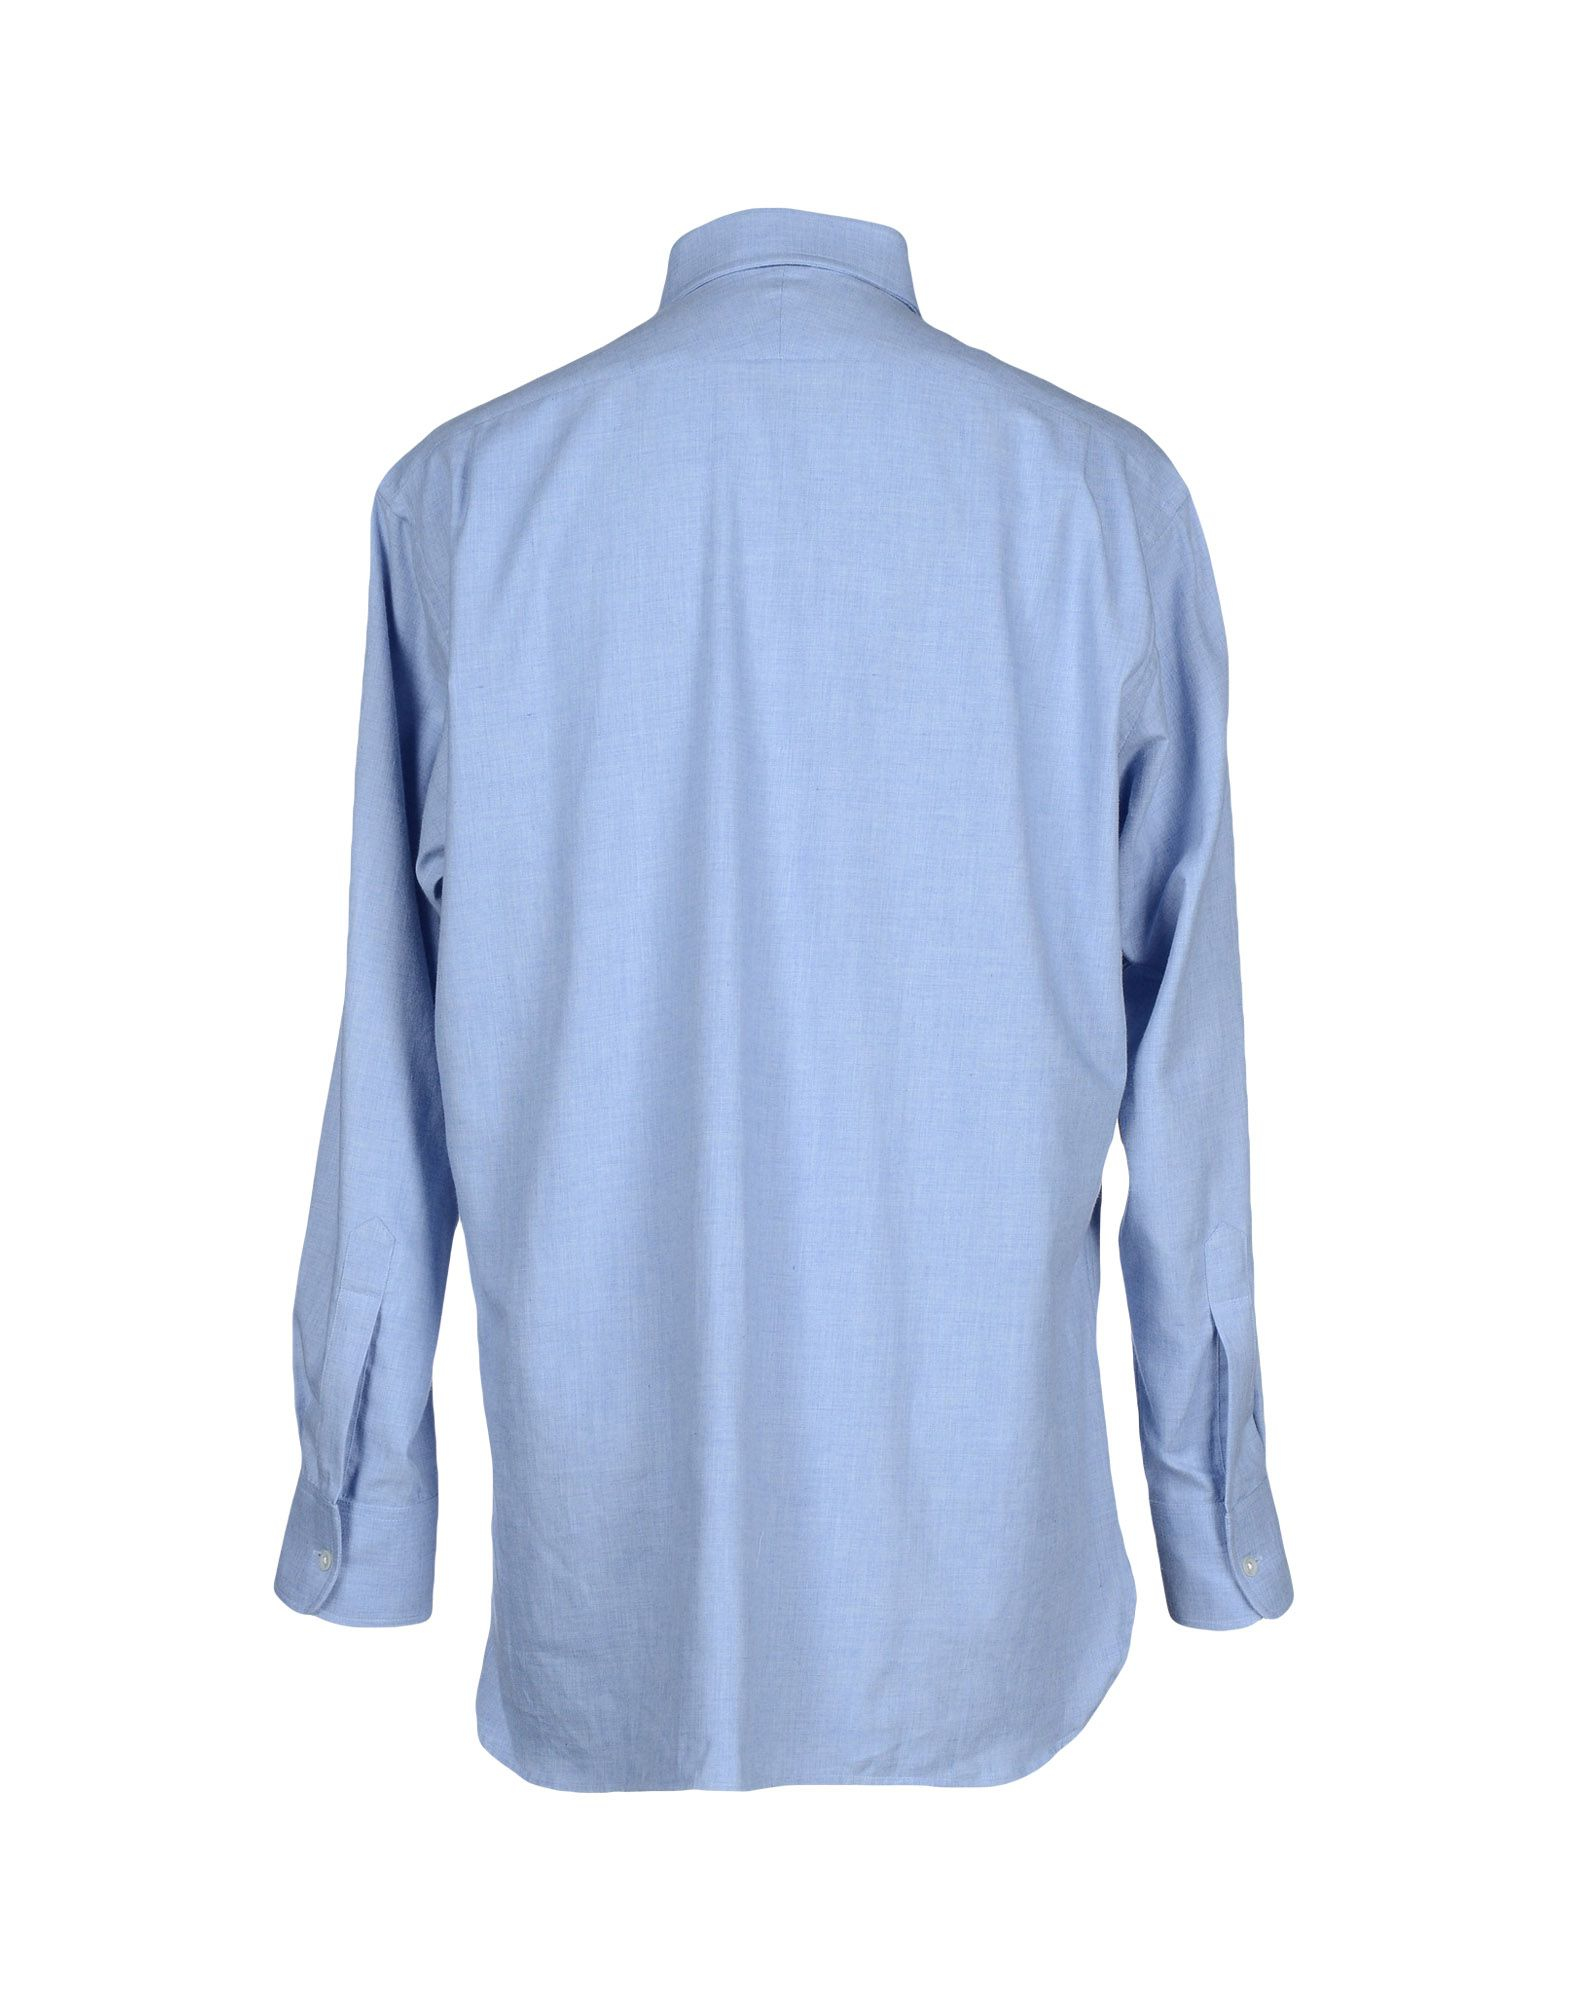 emma willis shirts ~ emma willis shirt in blue for men  lyst